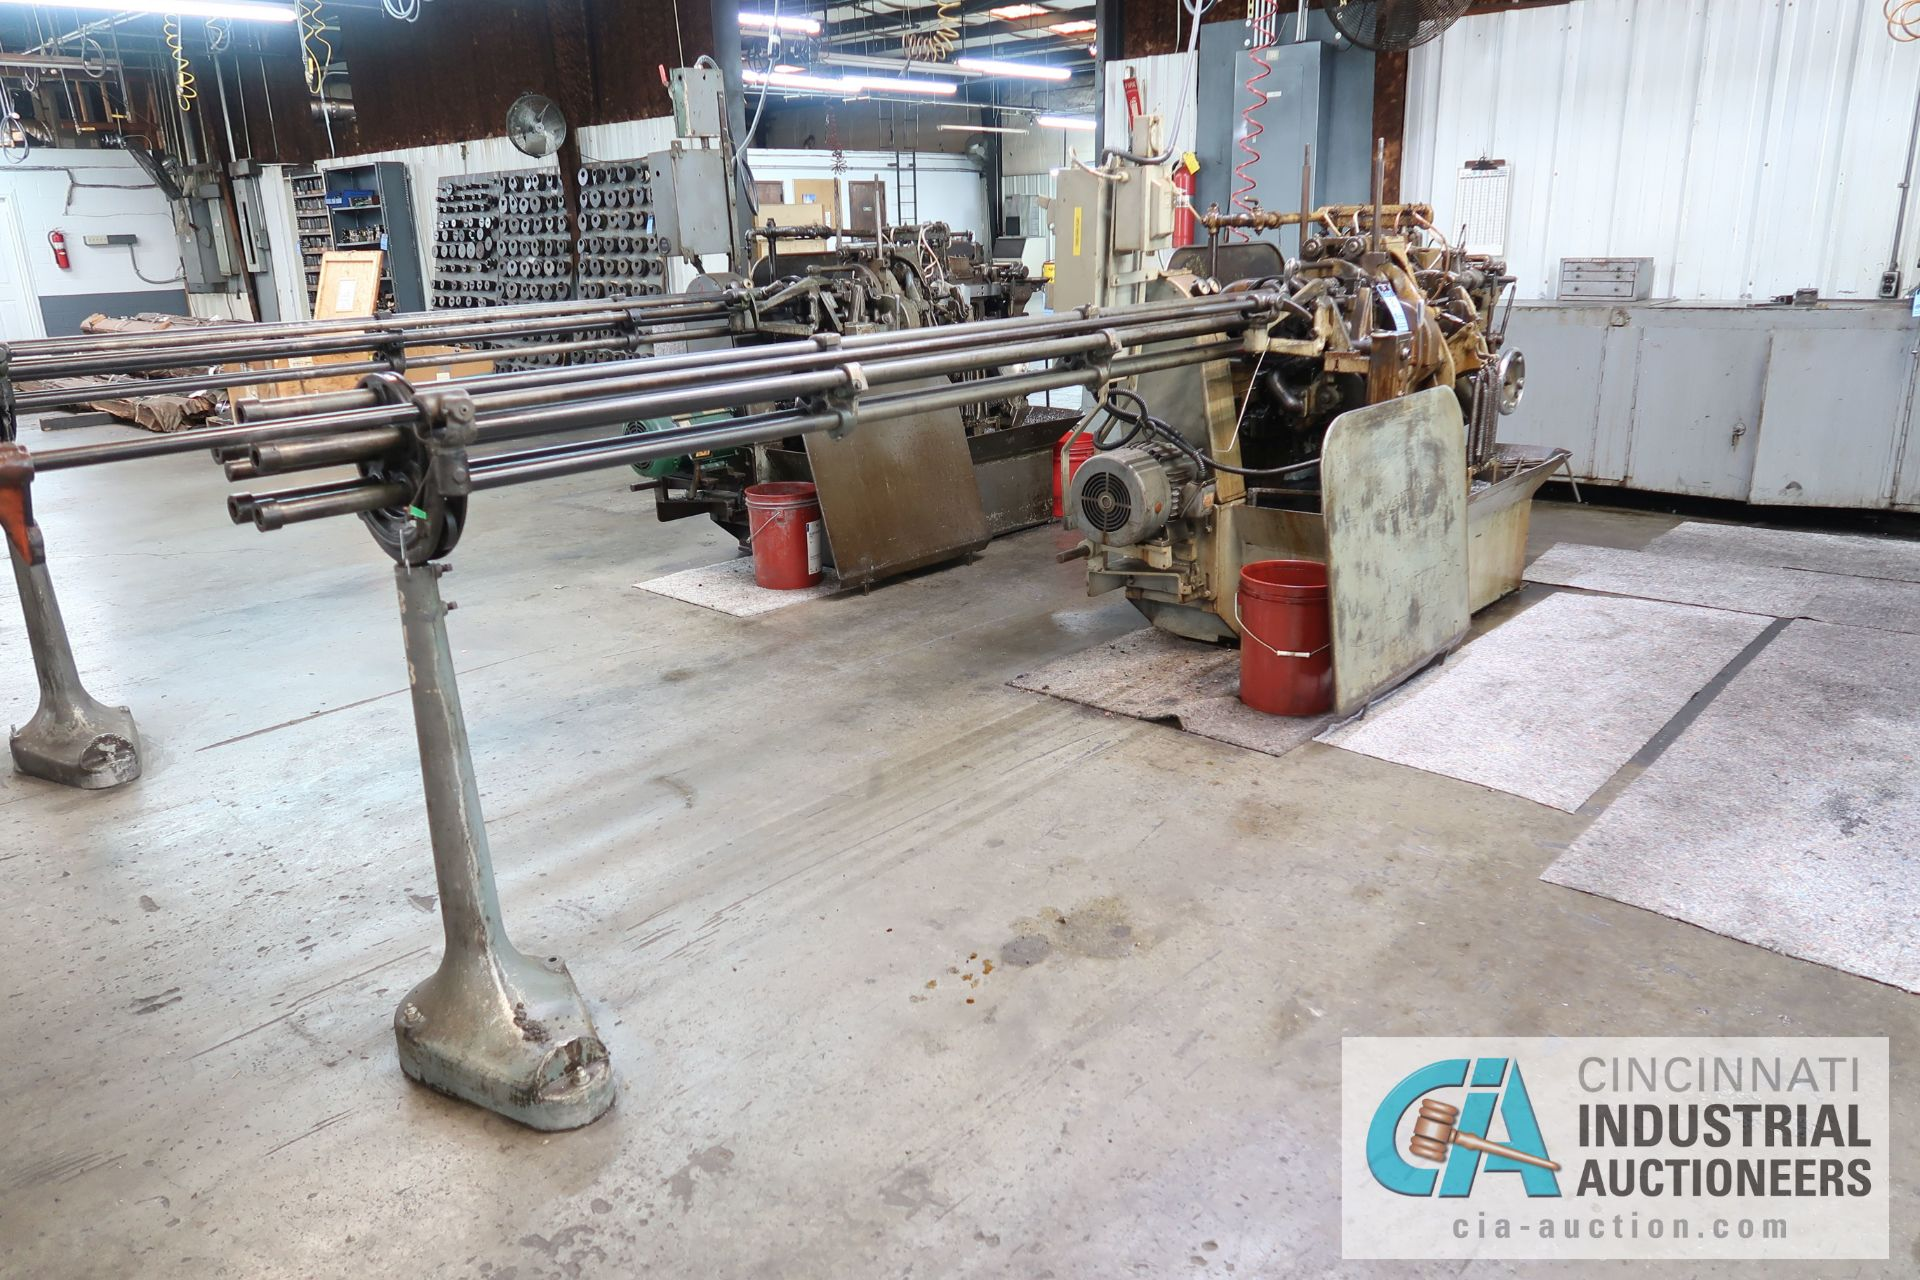 "Lot 2 - 3/4"" DAVENPORT 5-SPINDLE SCREW MACHINE; S/N 8077 (NEW 11-1973), WITH THREADING CLUTCH, PICK OFF,"